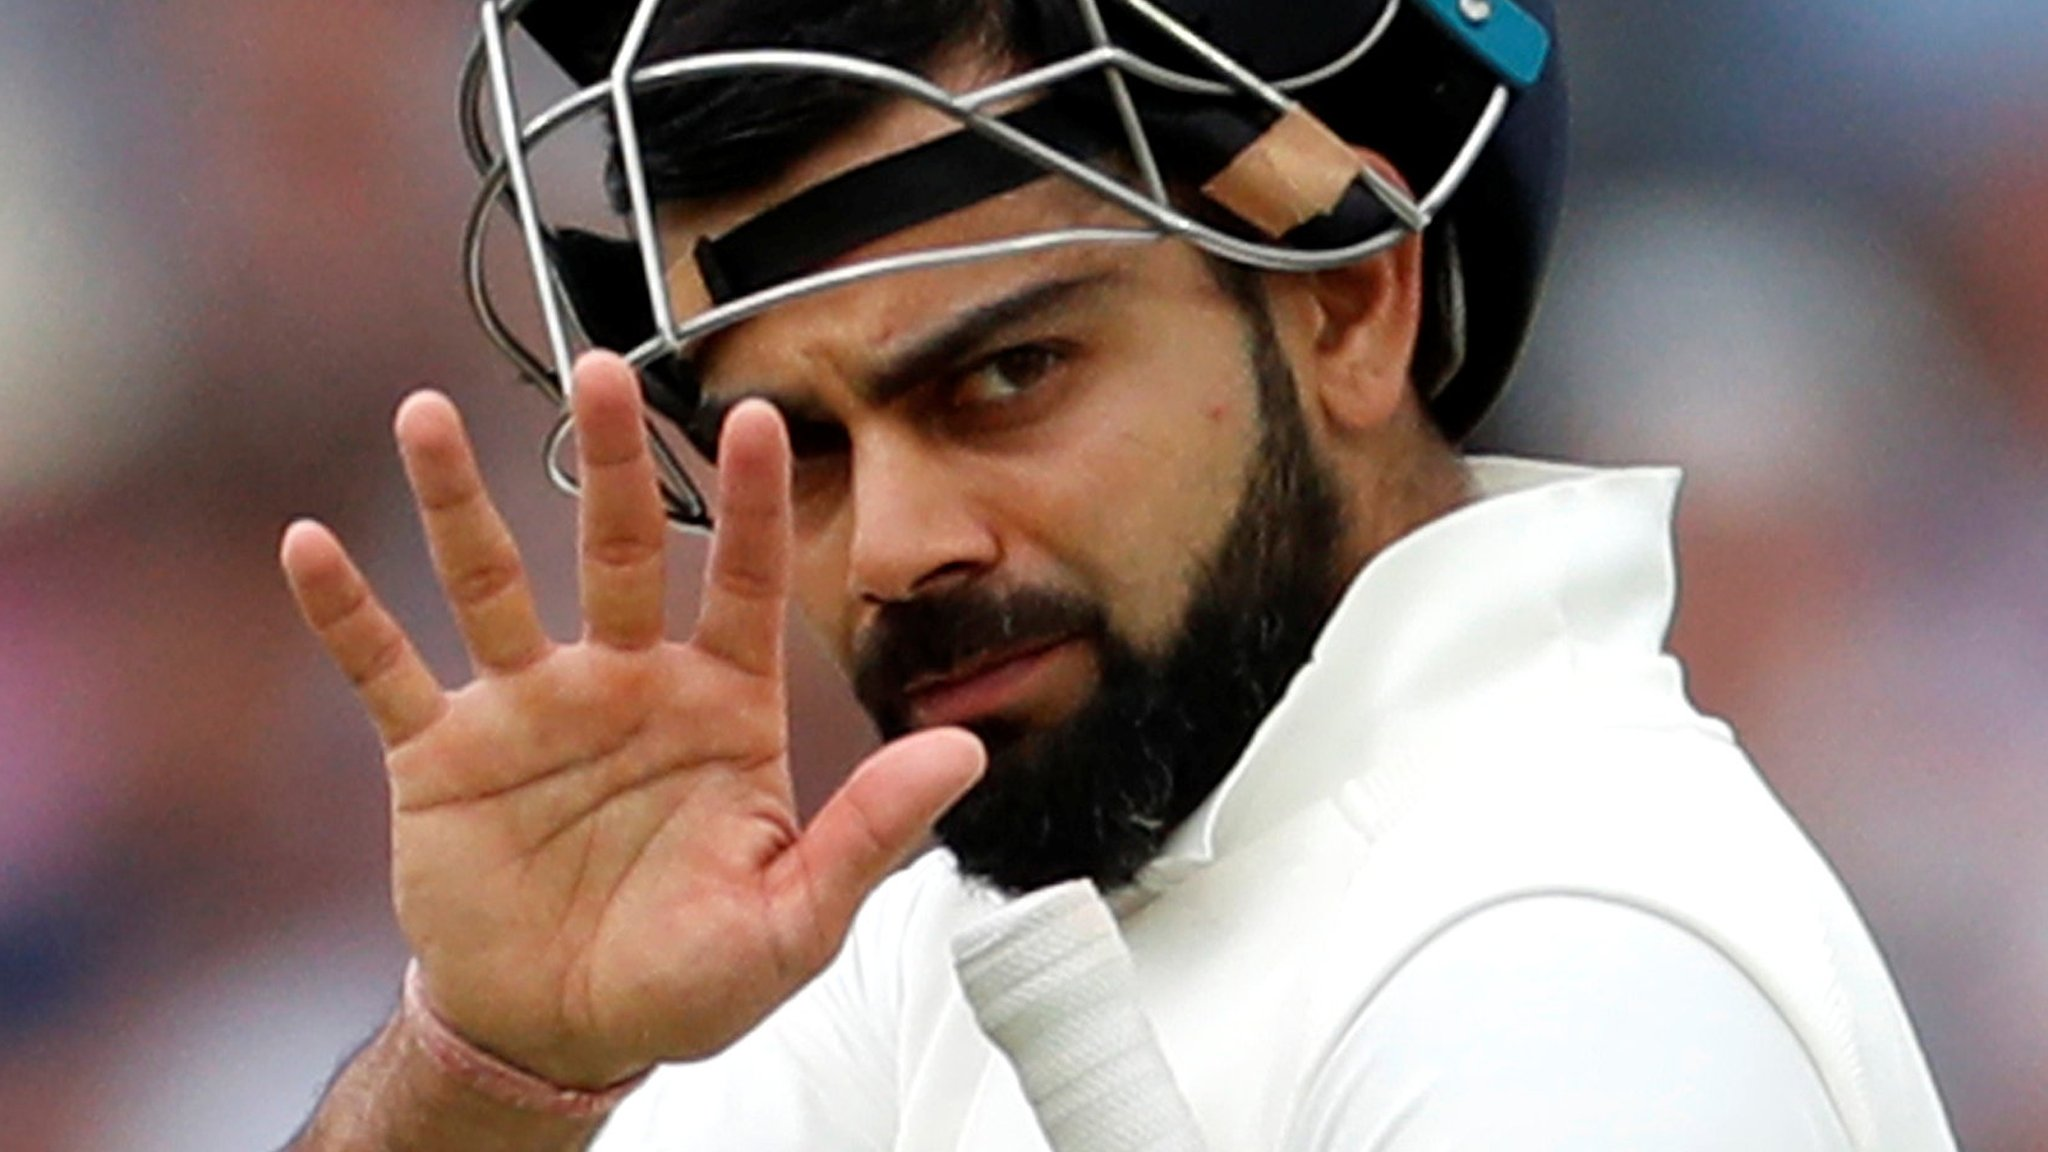 Virat Kohli the best in the world, says Michael Vaughan